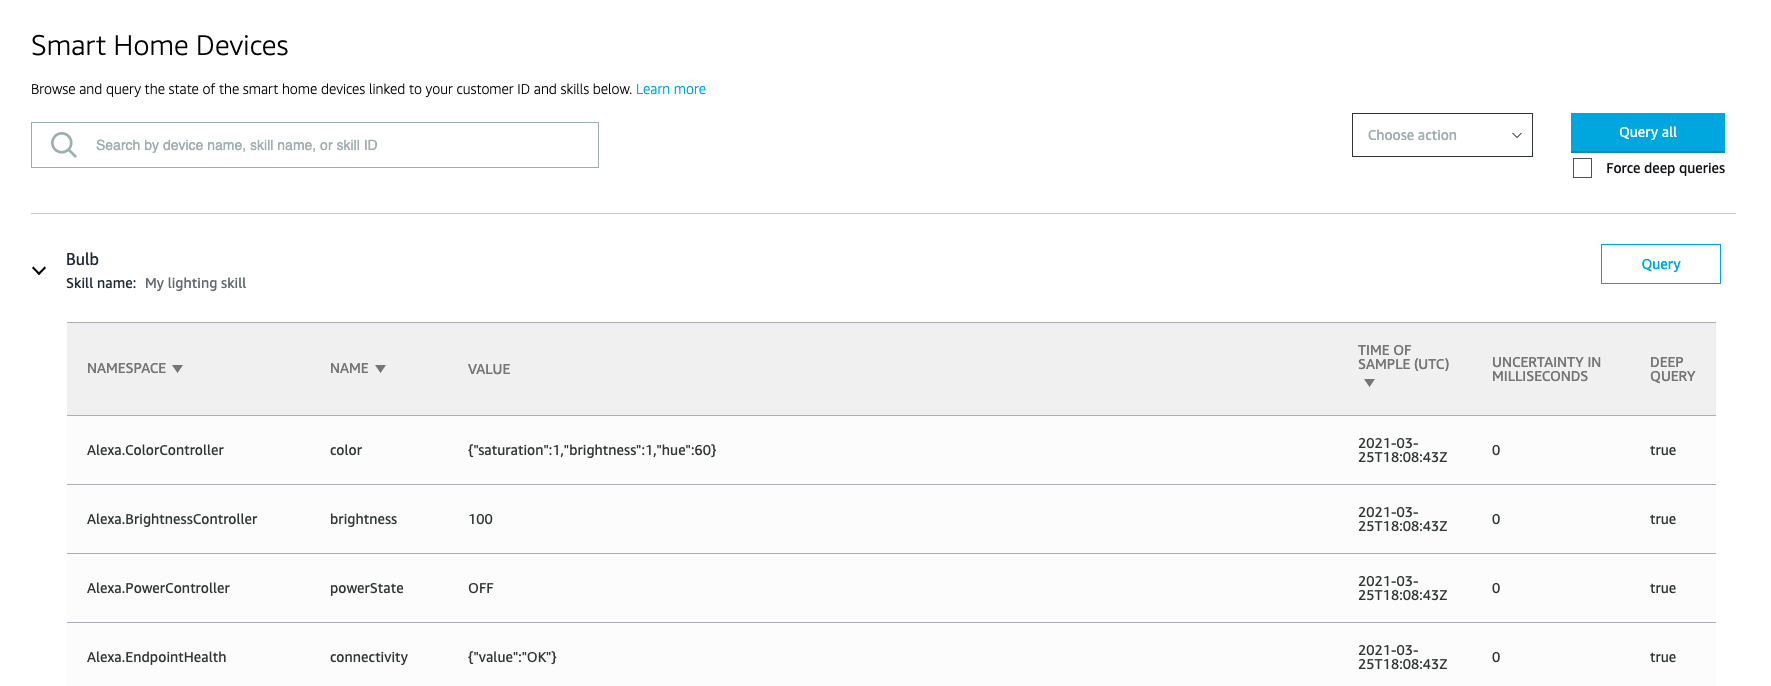 The Smart Home Devices page in the Alexa developer console